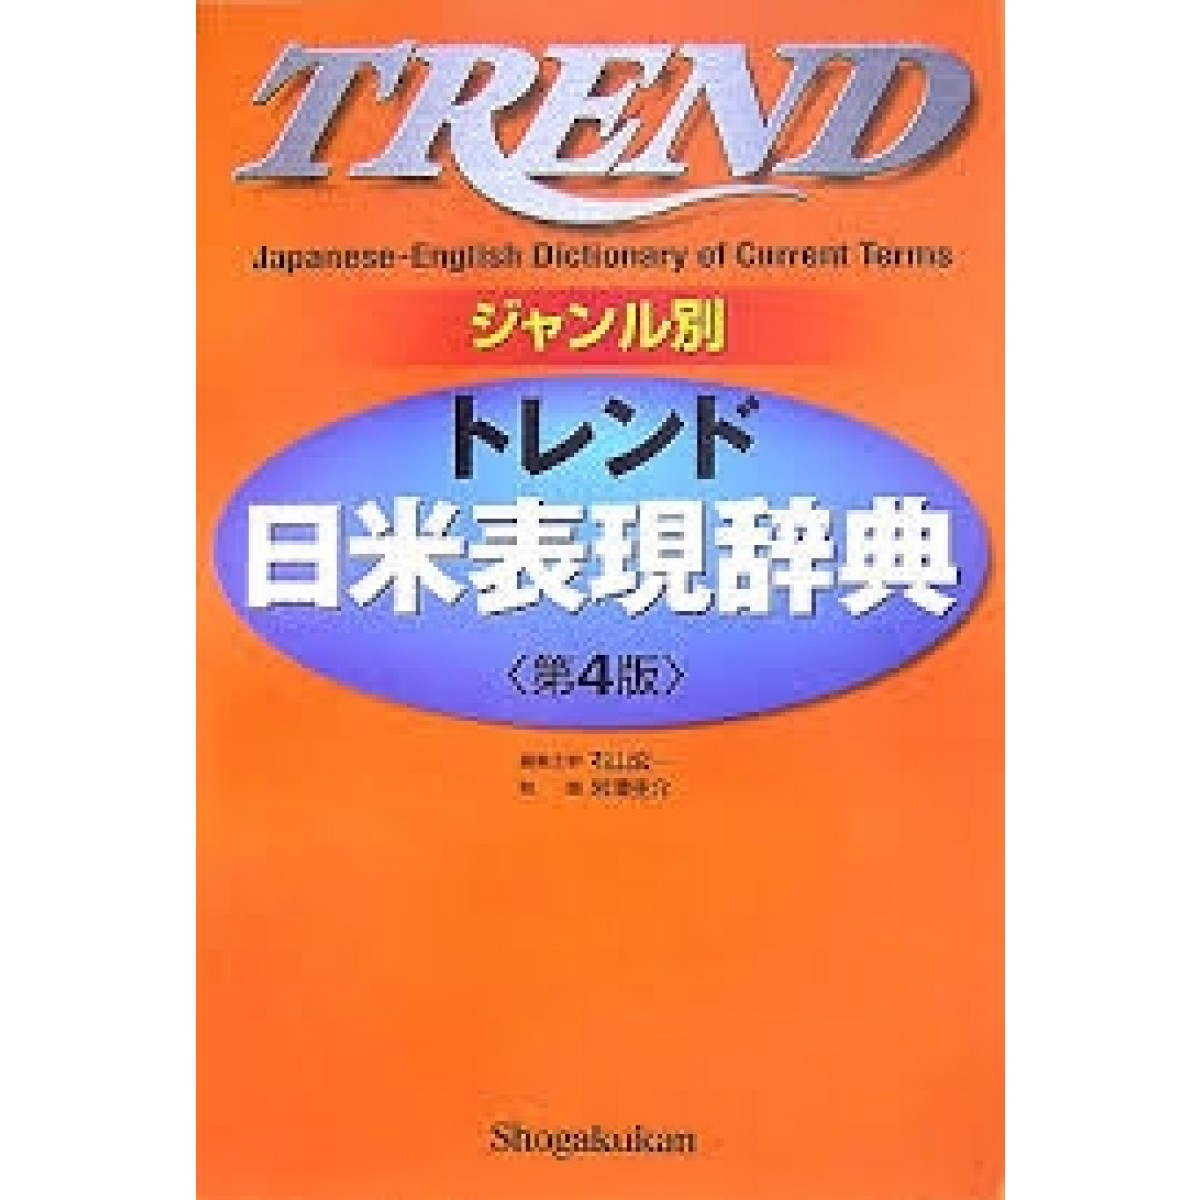 Trend Japanese English Dictionary of Current Terms - The